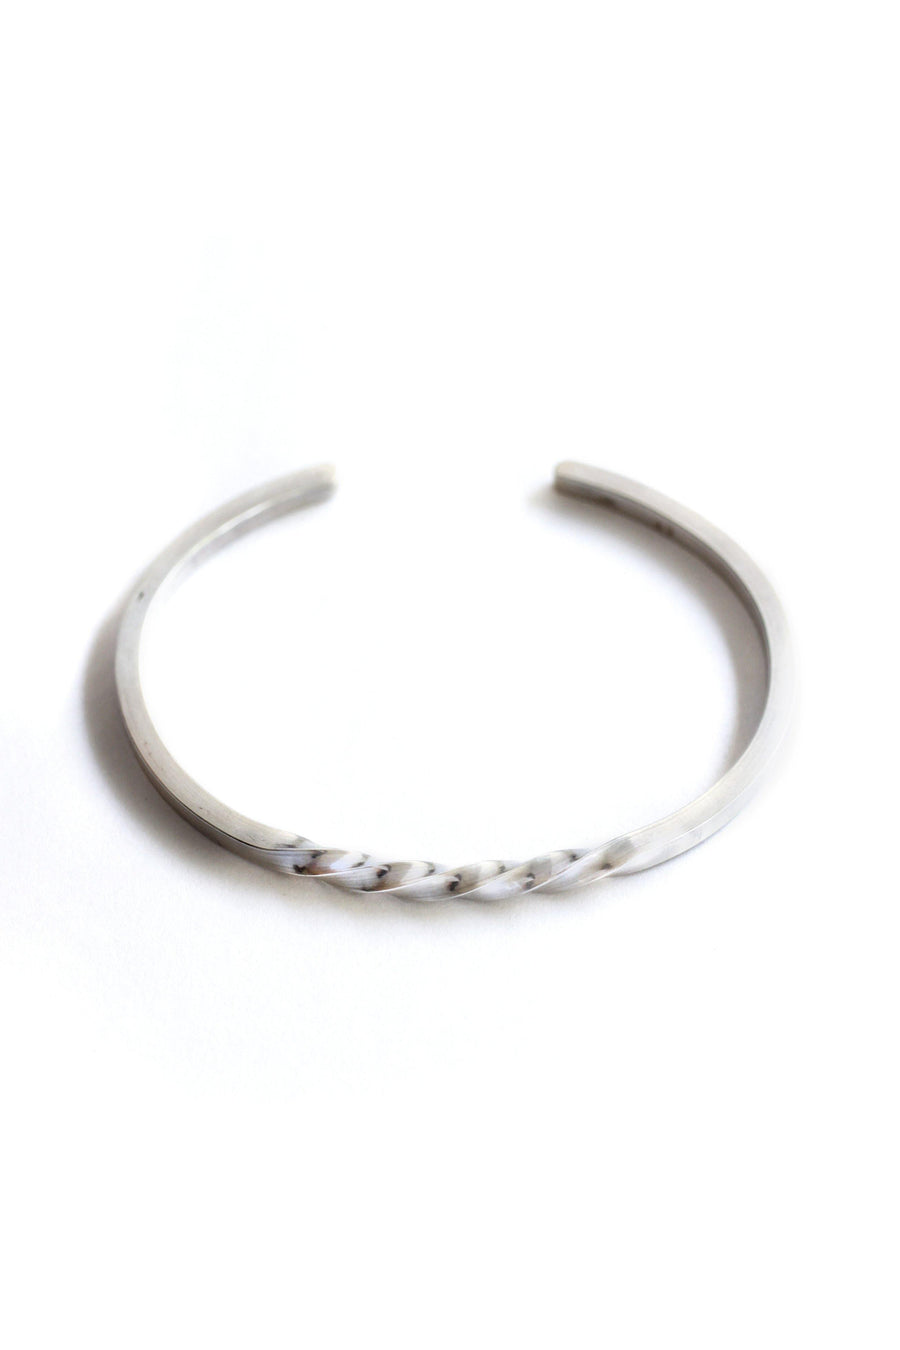 KIKI DIETERLE Rotation Bangle